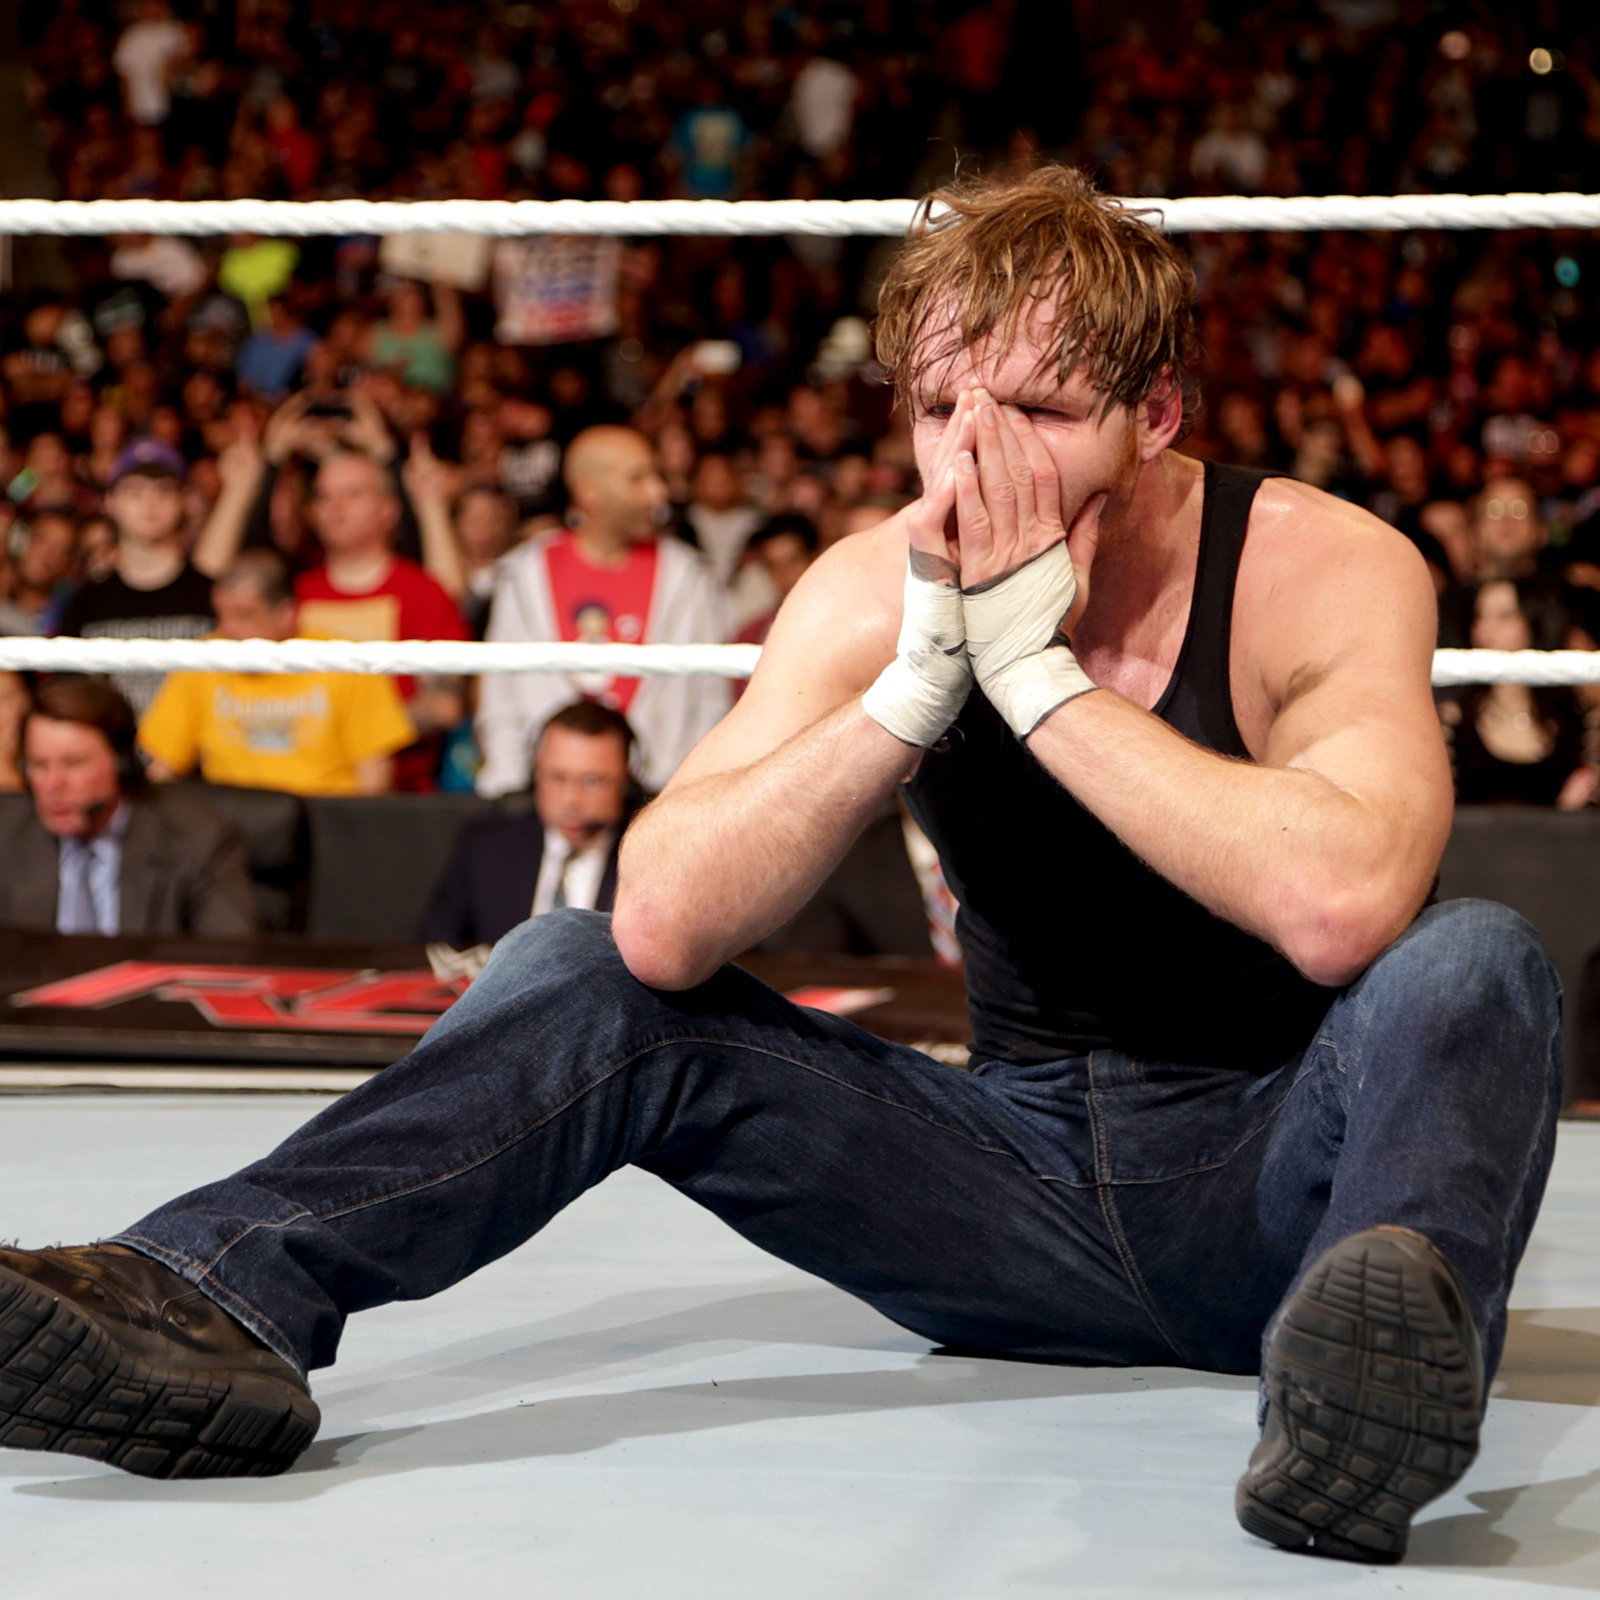 Ambrose cannot believe the title is gone from his waist.